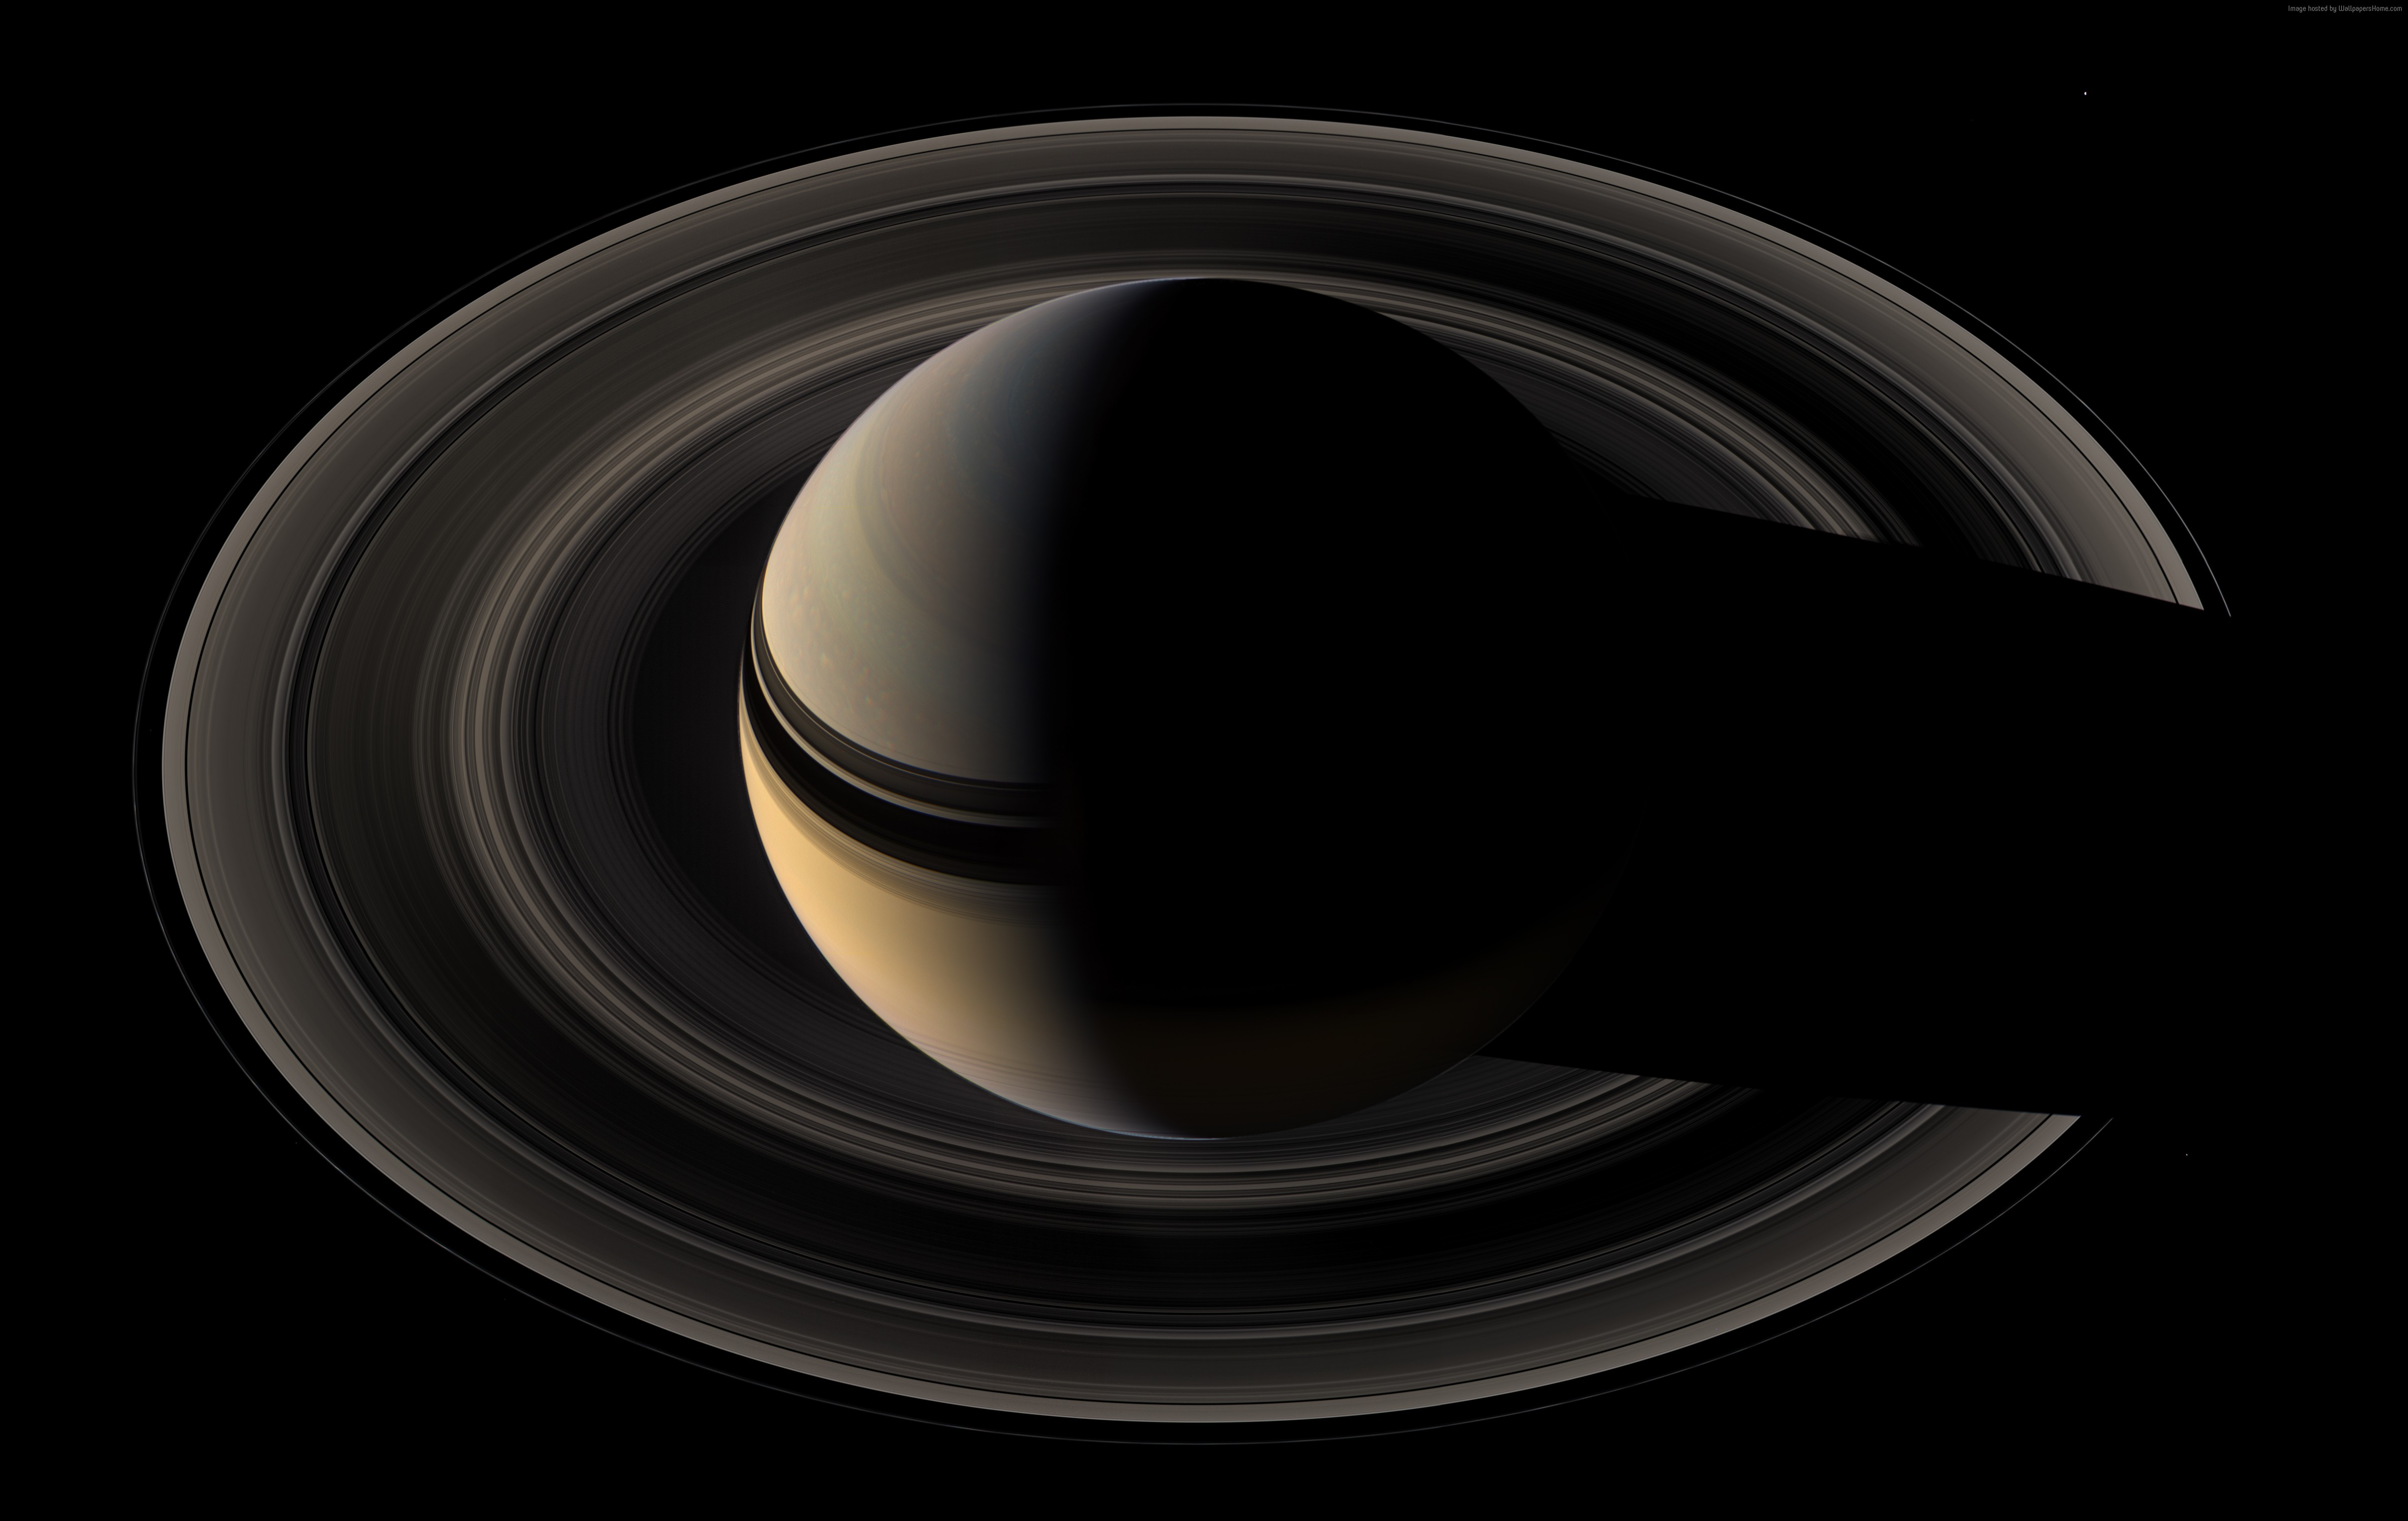 4824x3048 - Saturn Wallpapers 14